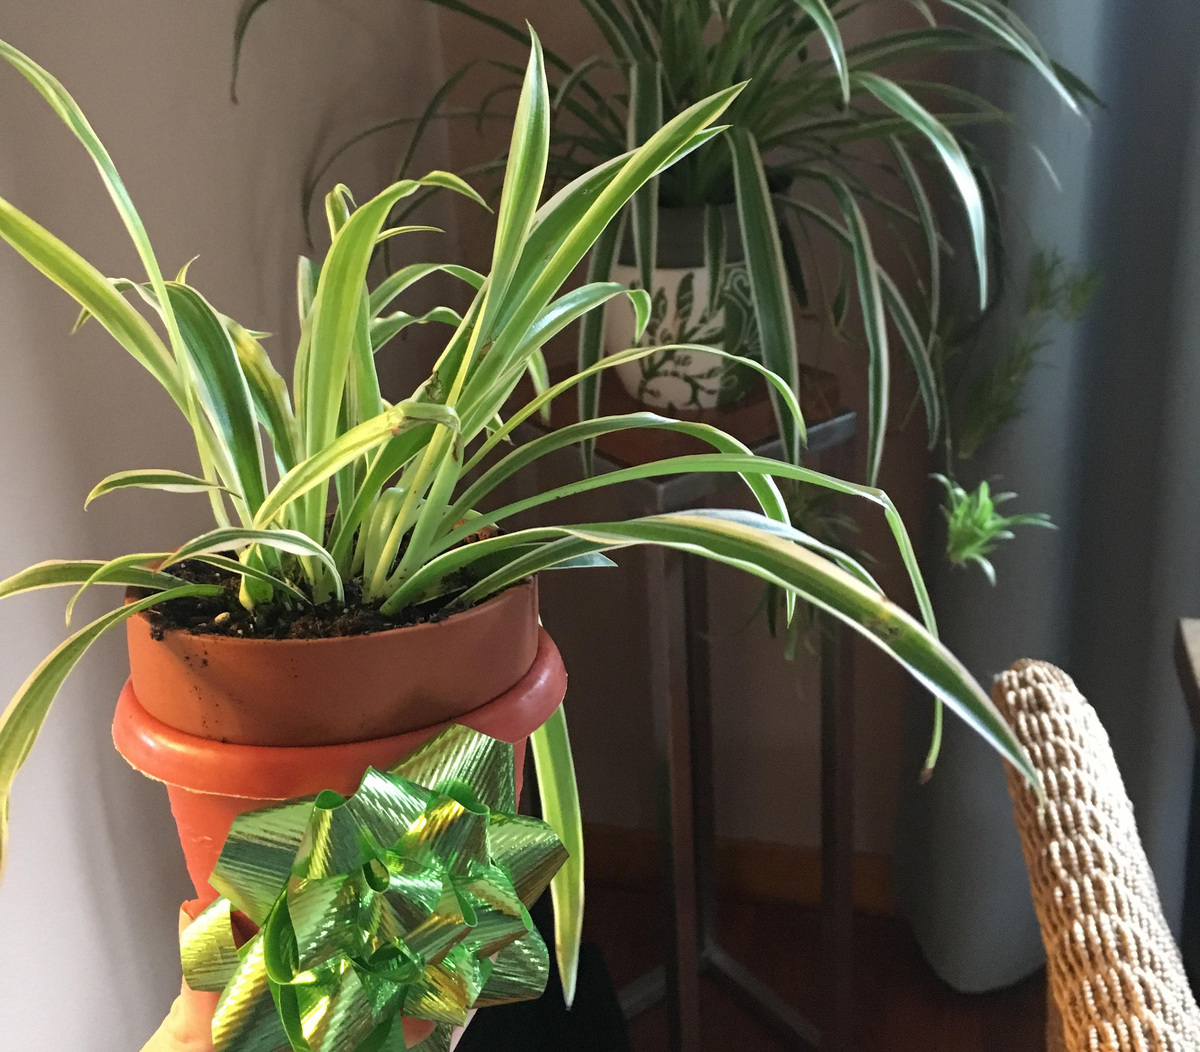 spider plants producing